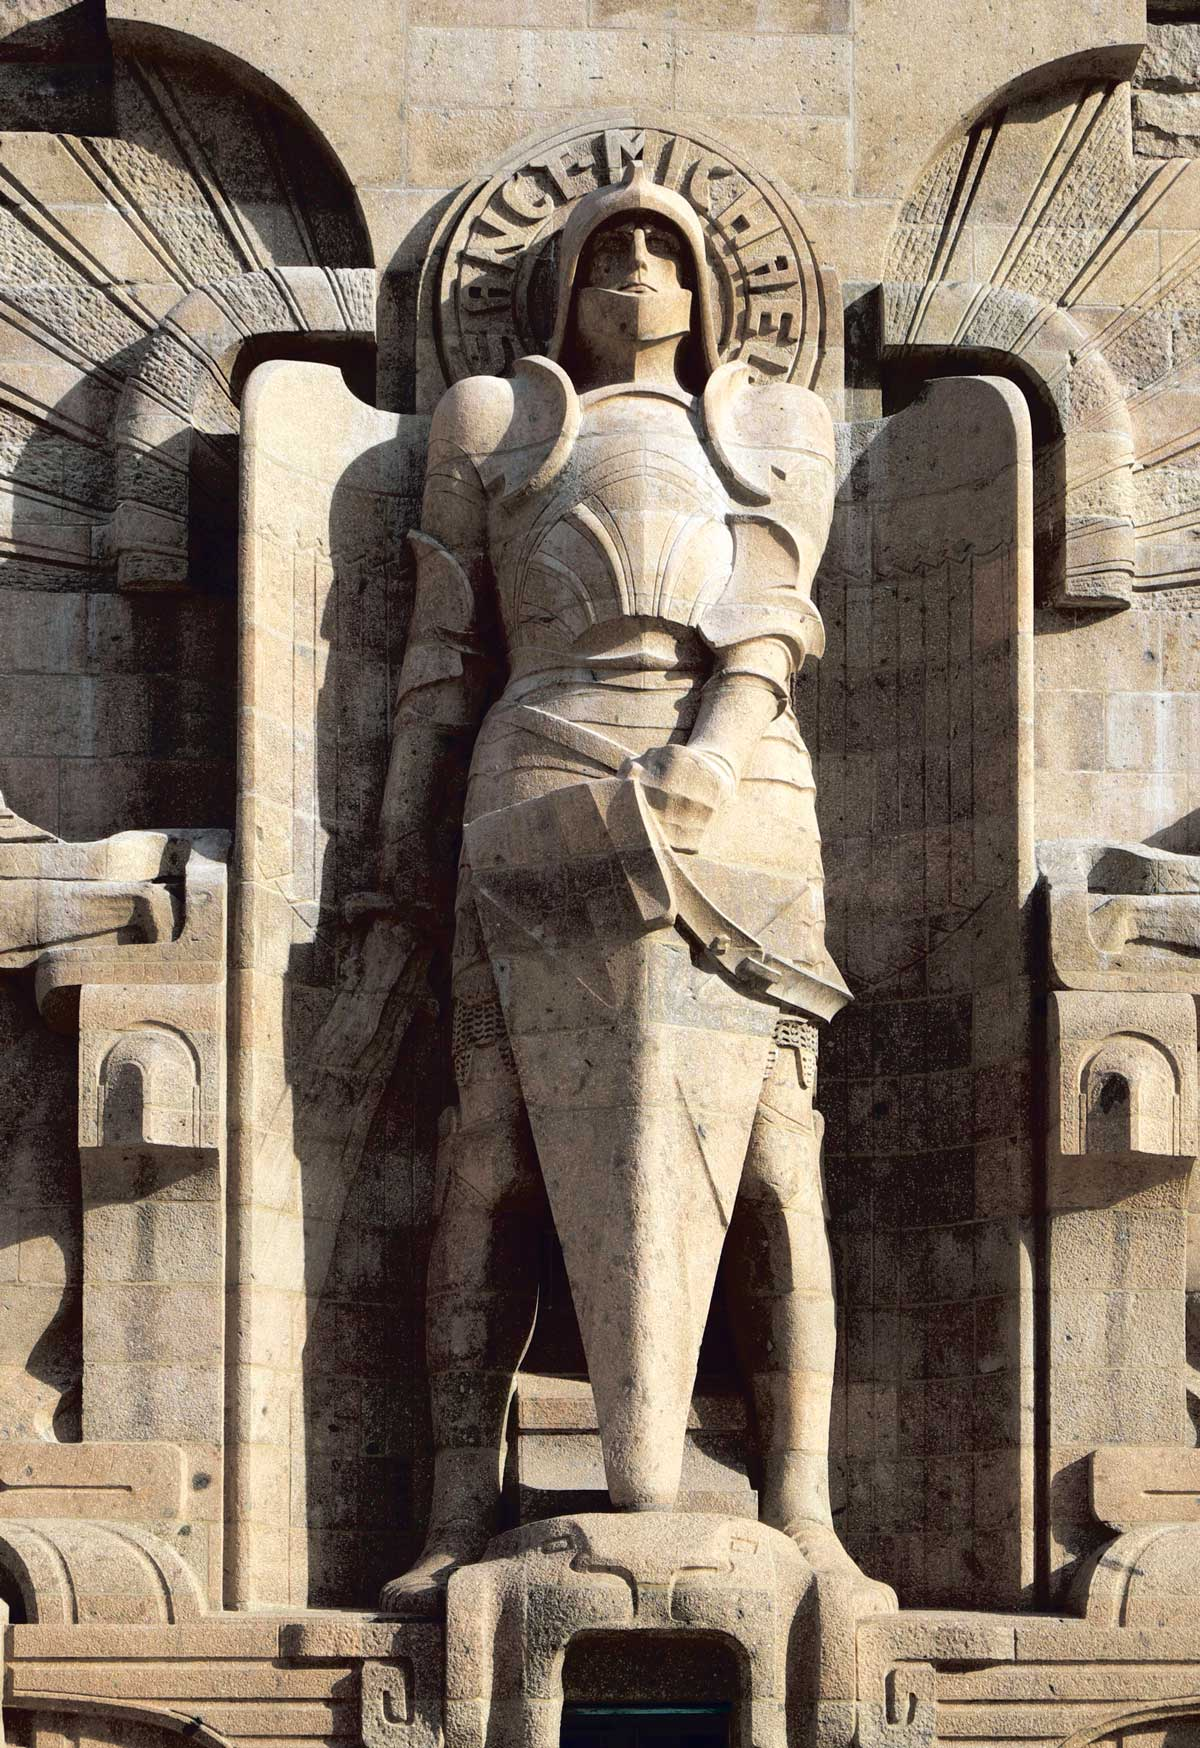 Statue of St Michael at the Völkerschlachtdenkmal, or Monument to the Battle of the Nations, Leipzig, opened in 1913 Michael Nitzschke/Alamy